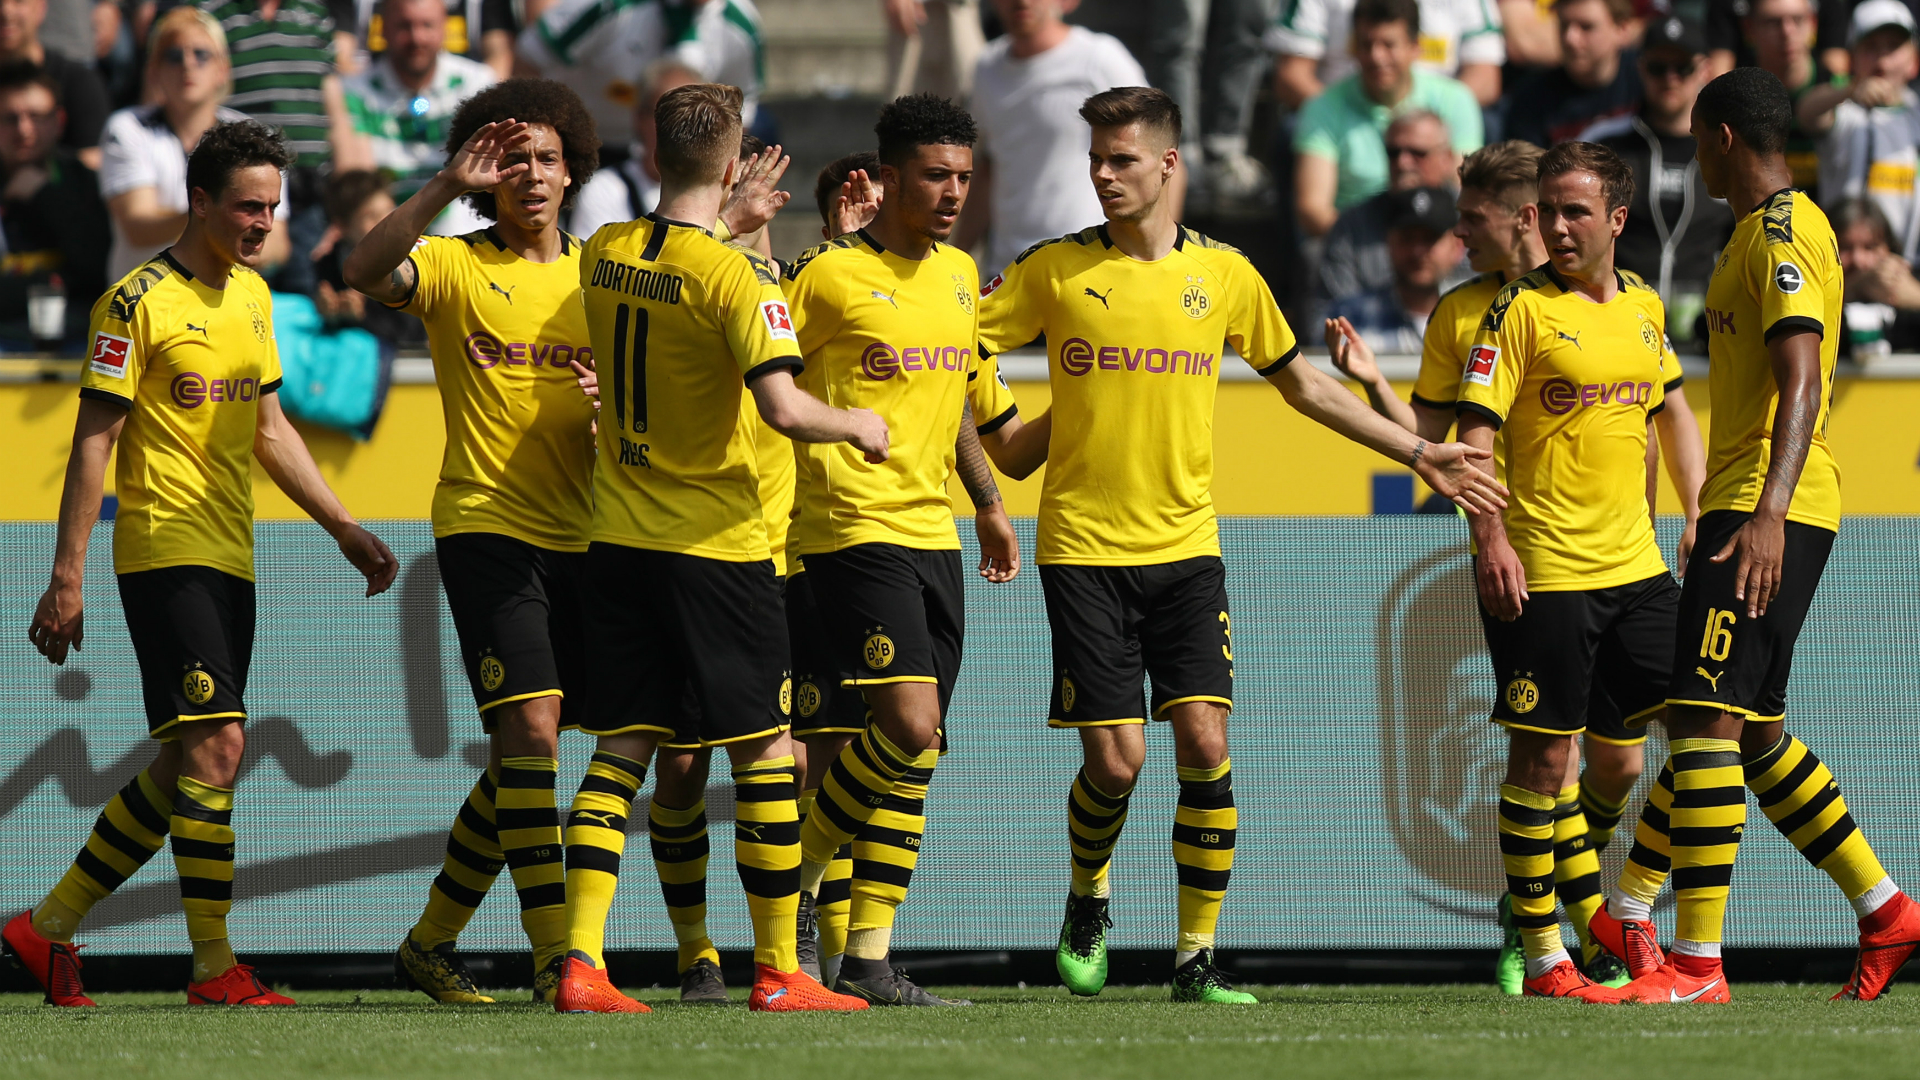 Borussia Monchengladbach 0 Borussia Dortmund 2: Three points not enough for runners-up